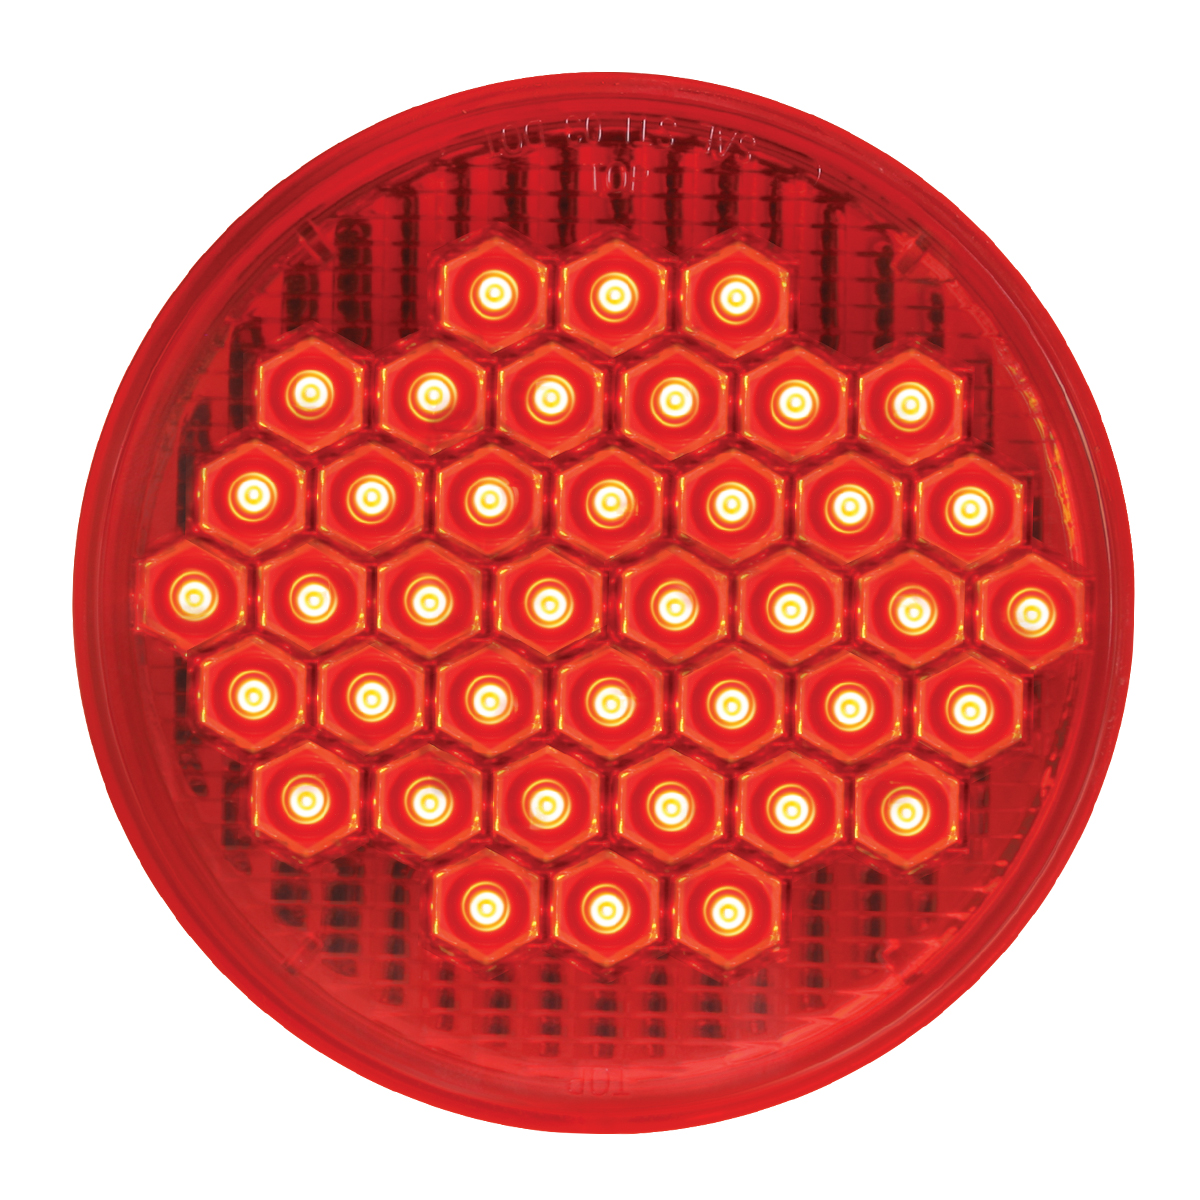 "#87700 4"" Round High Count LED Flat Light - Red/Red"